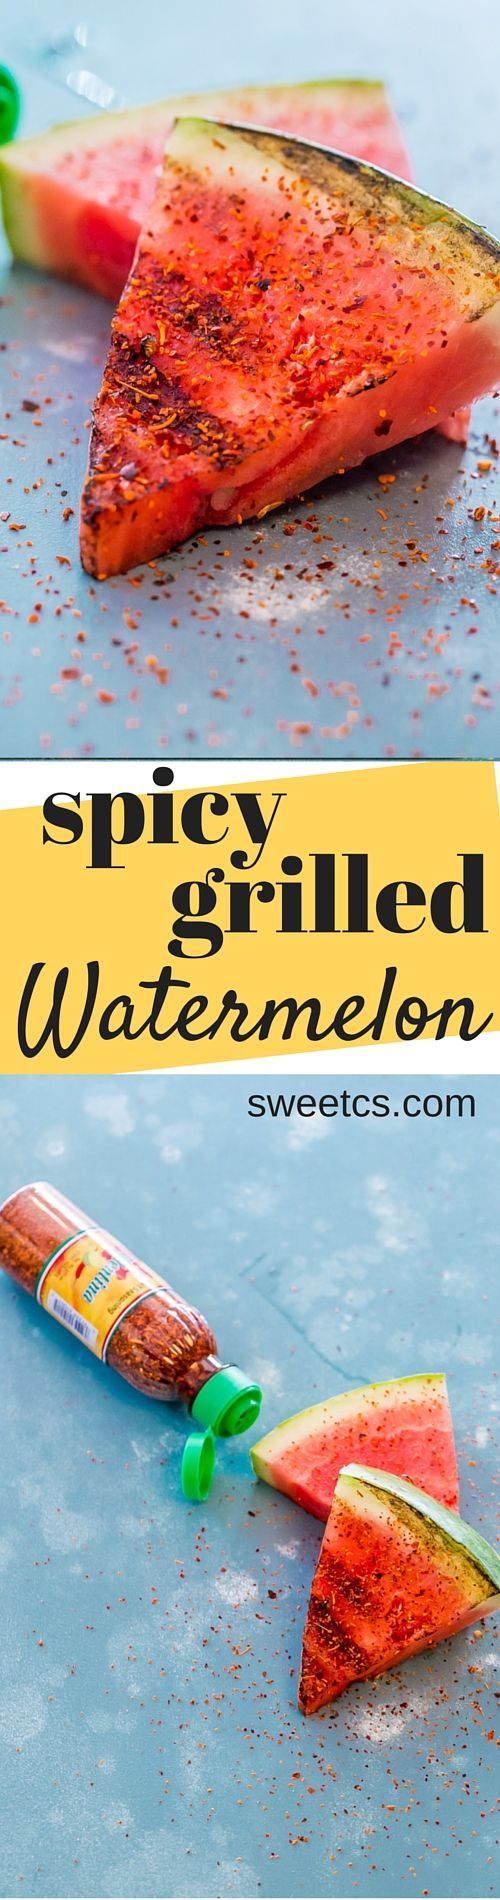 Spicy Grilled Watermelon | Recipe | Spicy, Watermelon and Summer